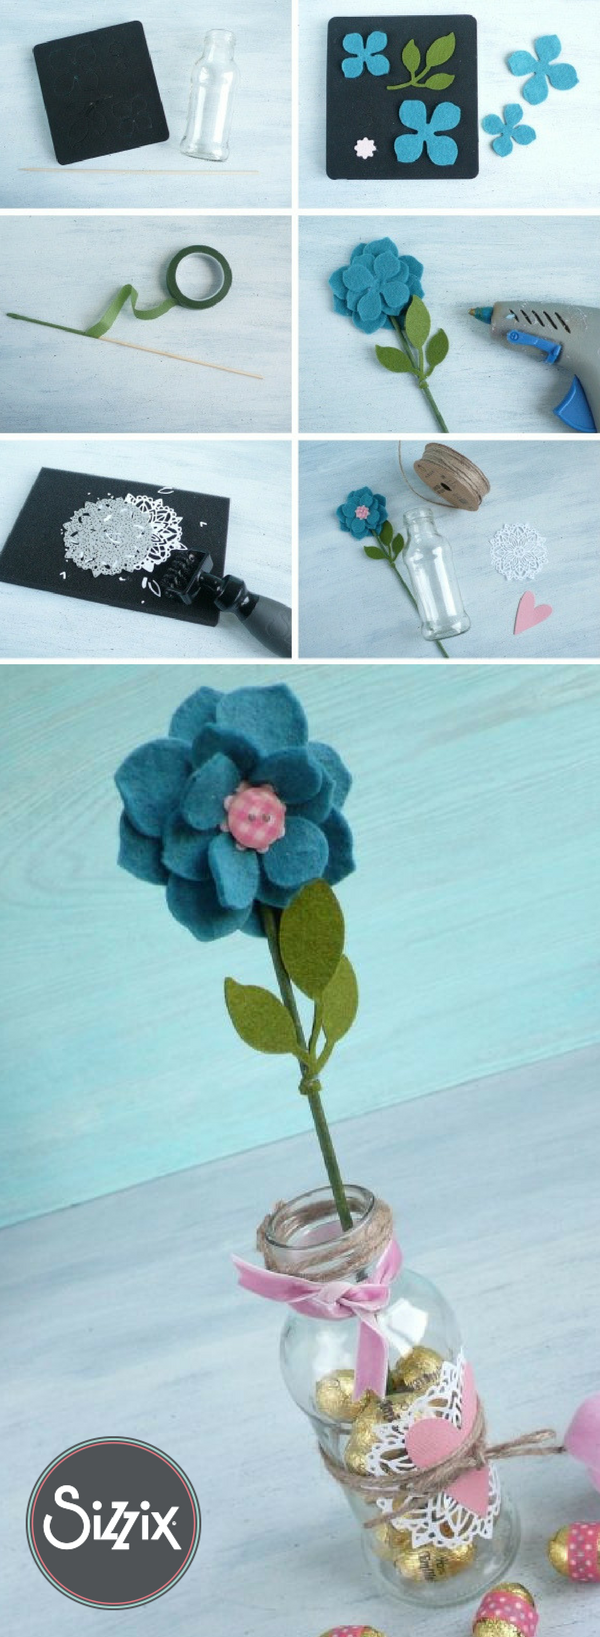 How to make an Easter felt flower using Sizzix dies. #feltflowertemplate How to make an Easter felt flower using Sizzix dies. #feltflowertemplate